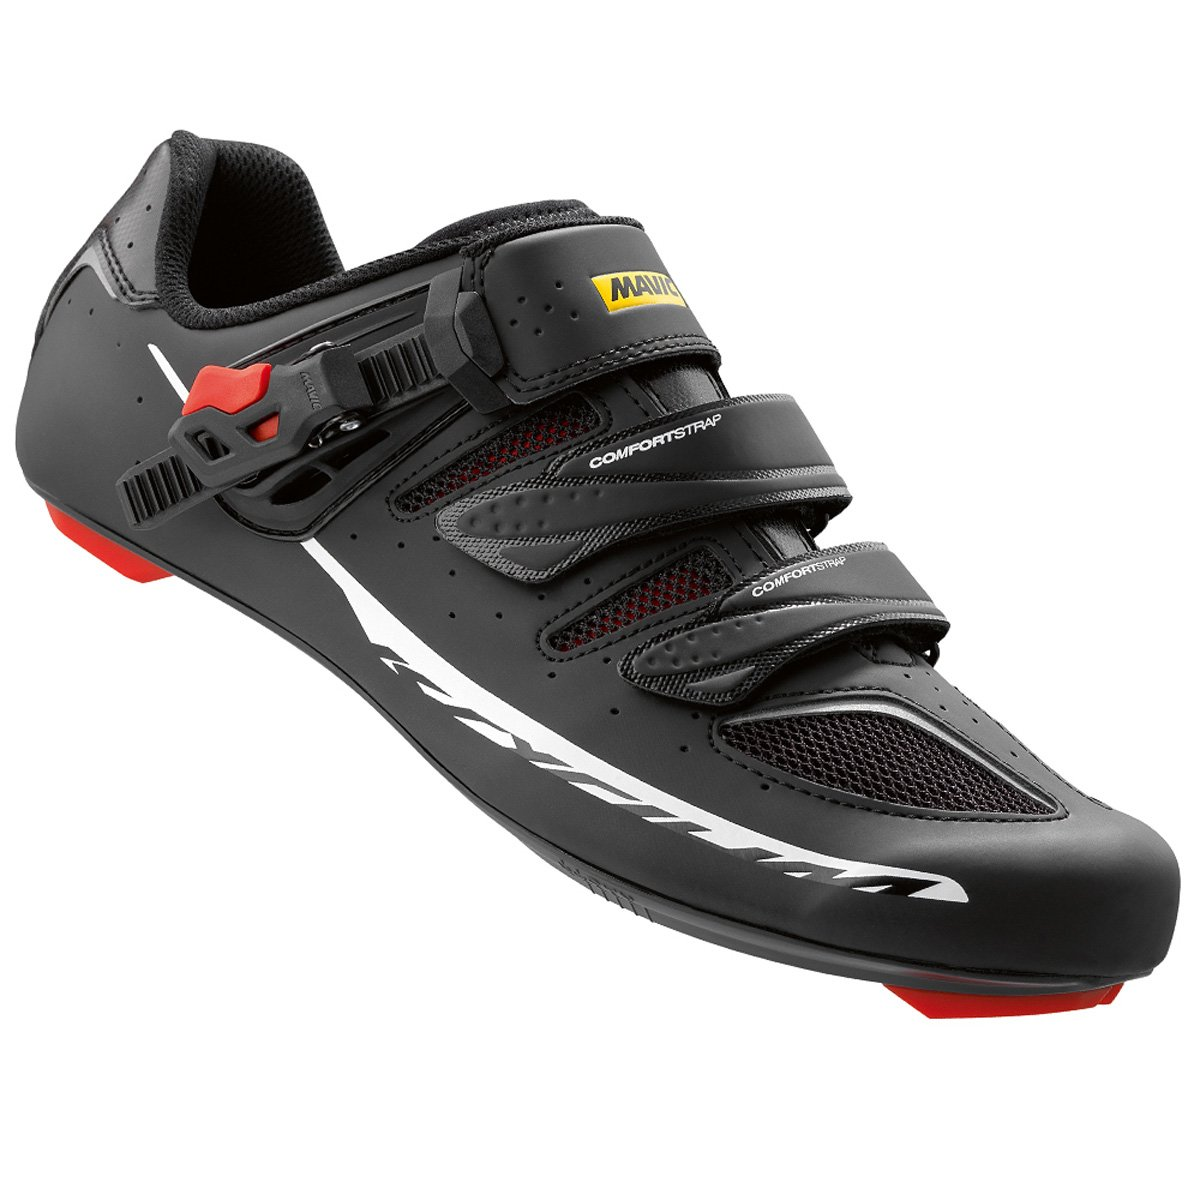 Mavic メンズ B0153RFE6O US 8.0/UK 7.5|Black/Racing Red Black/Racing Red US 8.0/UK 7.5